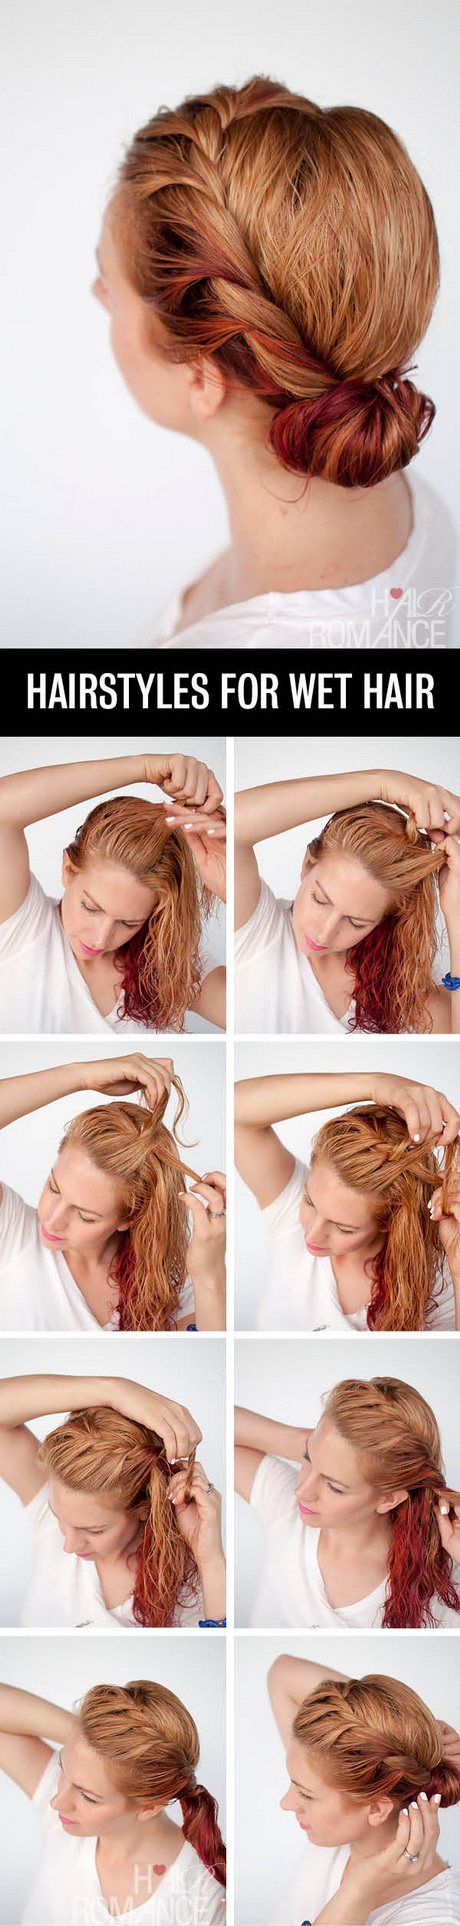 Hairstyles For Damp Hair : Hairstyles you can do with wet hair